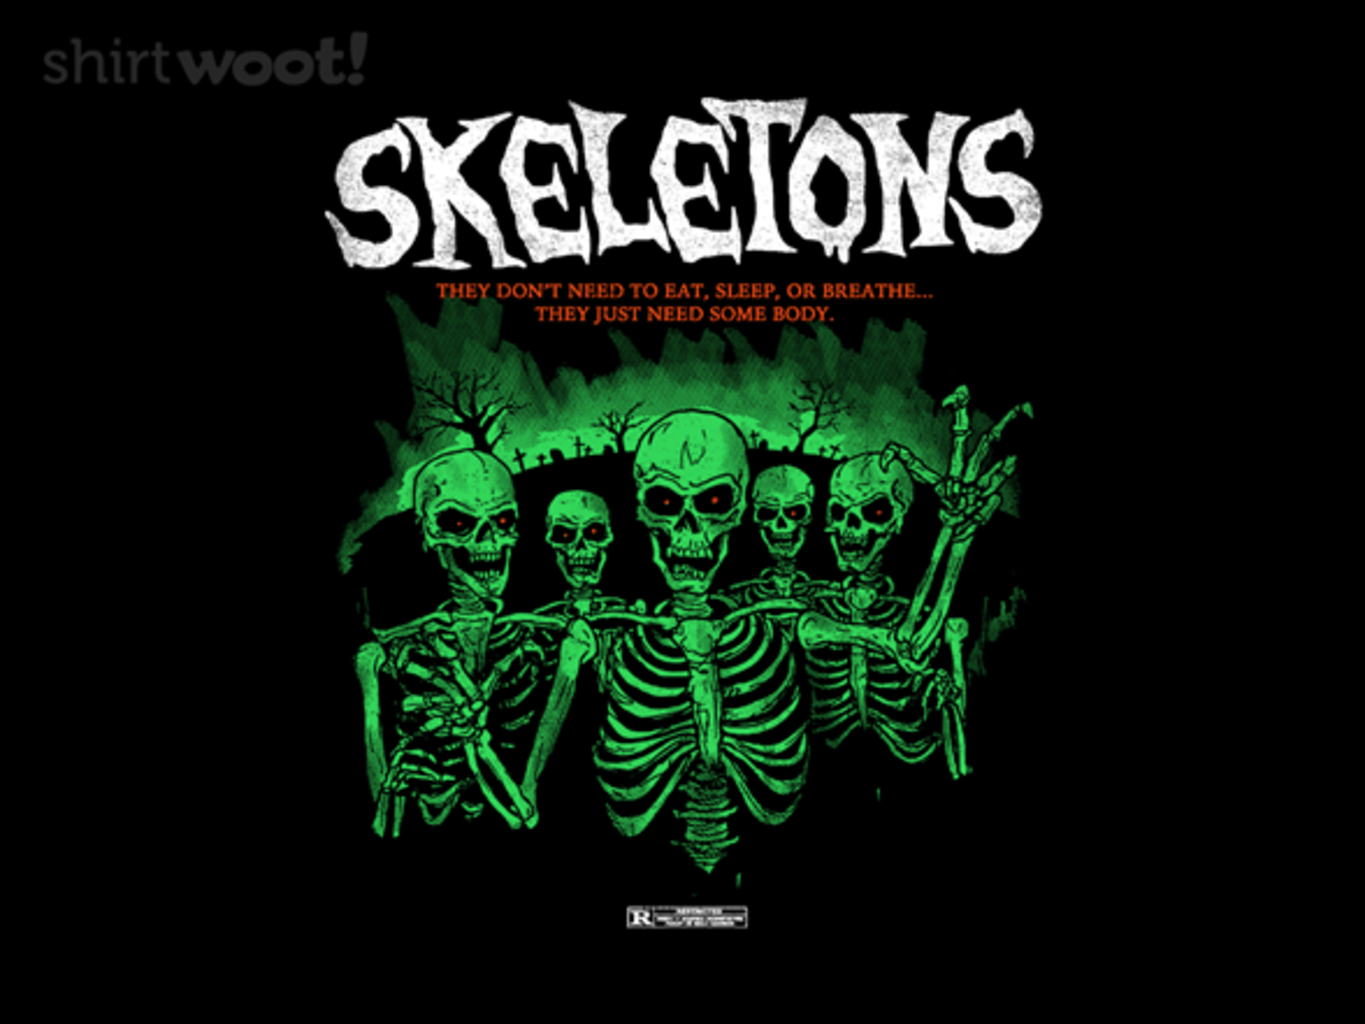 Woot!: Skeletons - $7.00 + $5 standard shipping